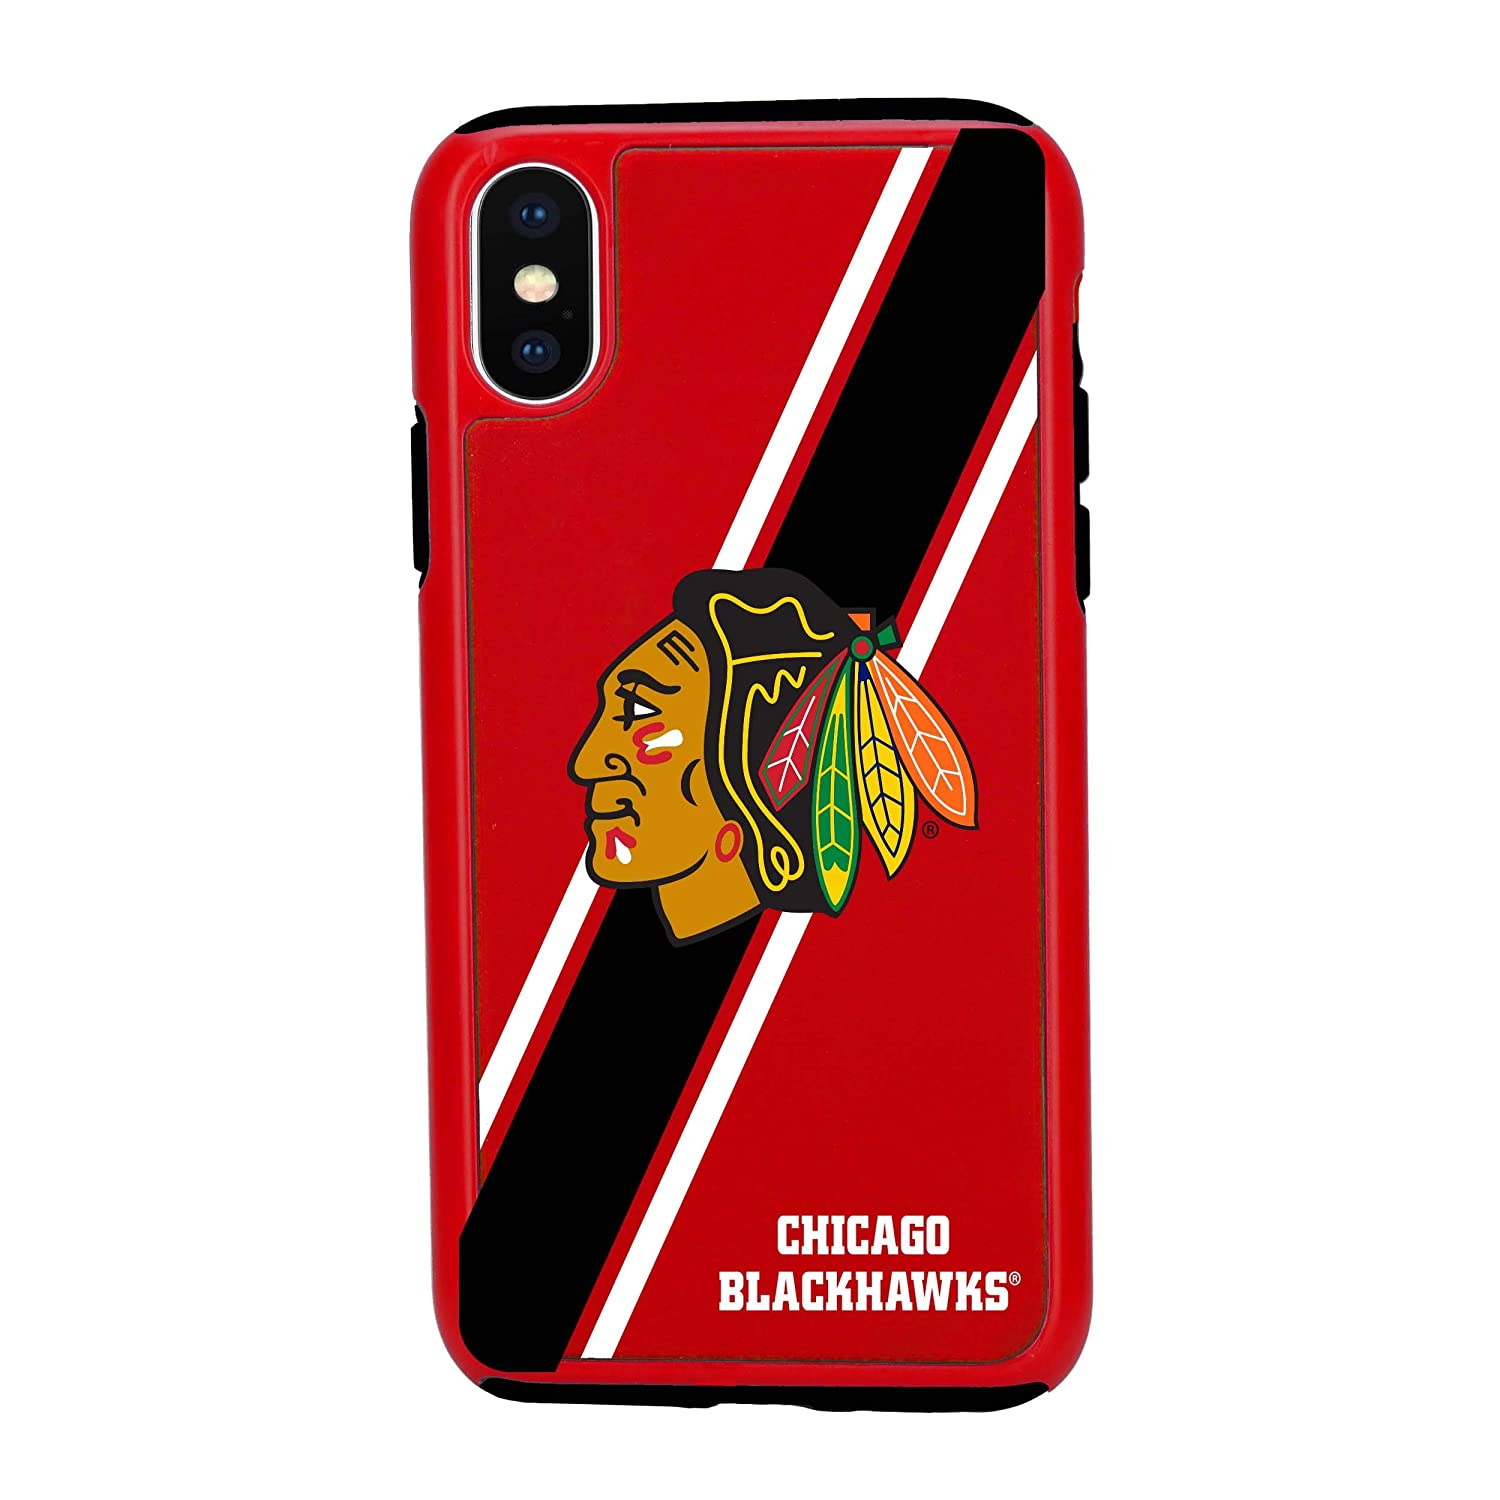 6.1inch Forever Collectibles Impact Series Dual Layered Case for NHL iPhone XR